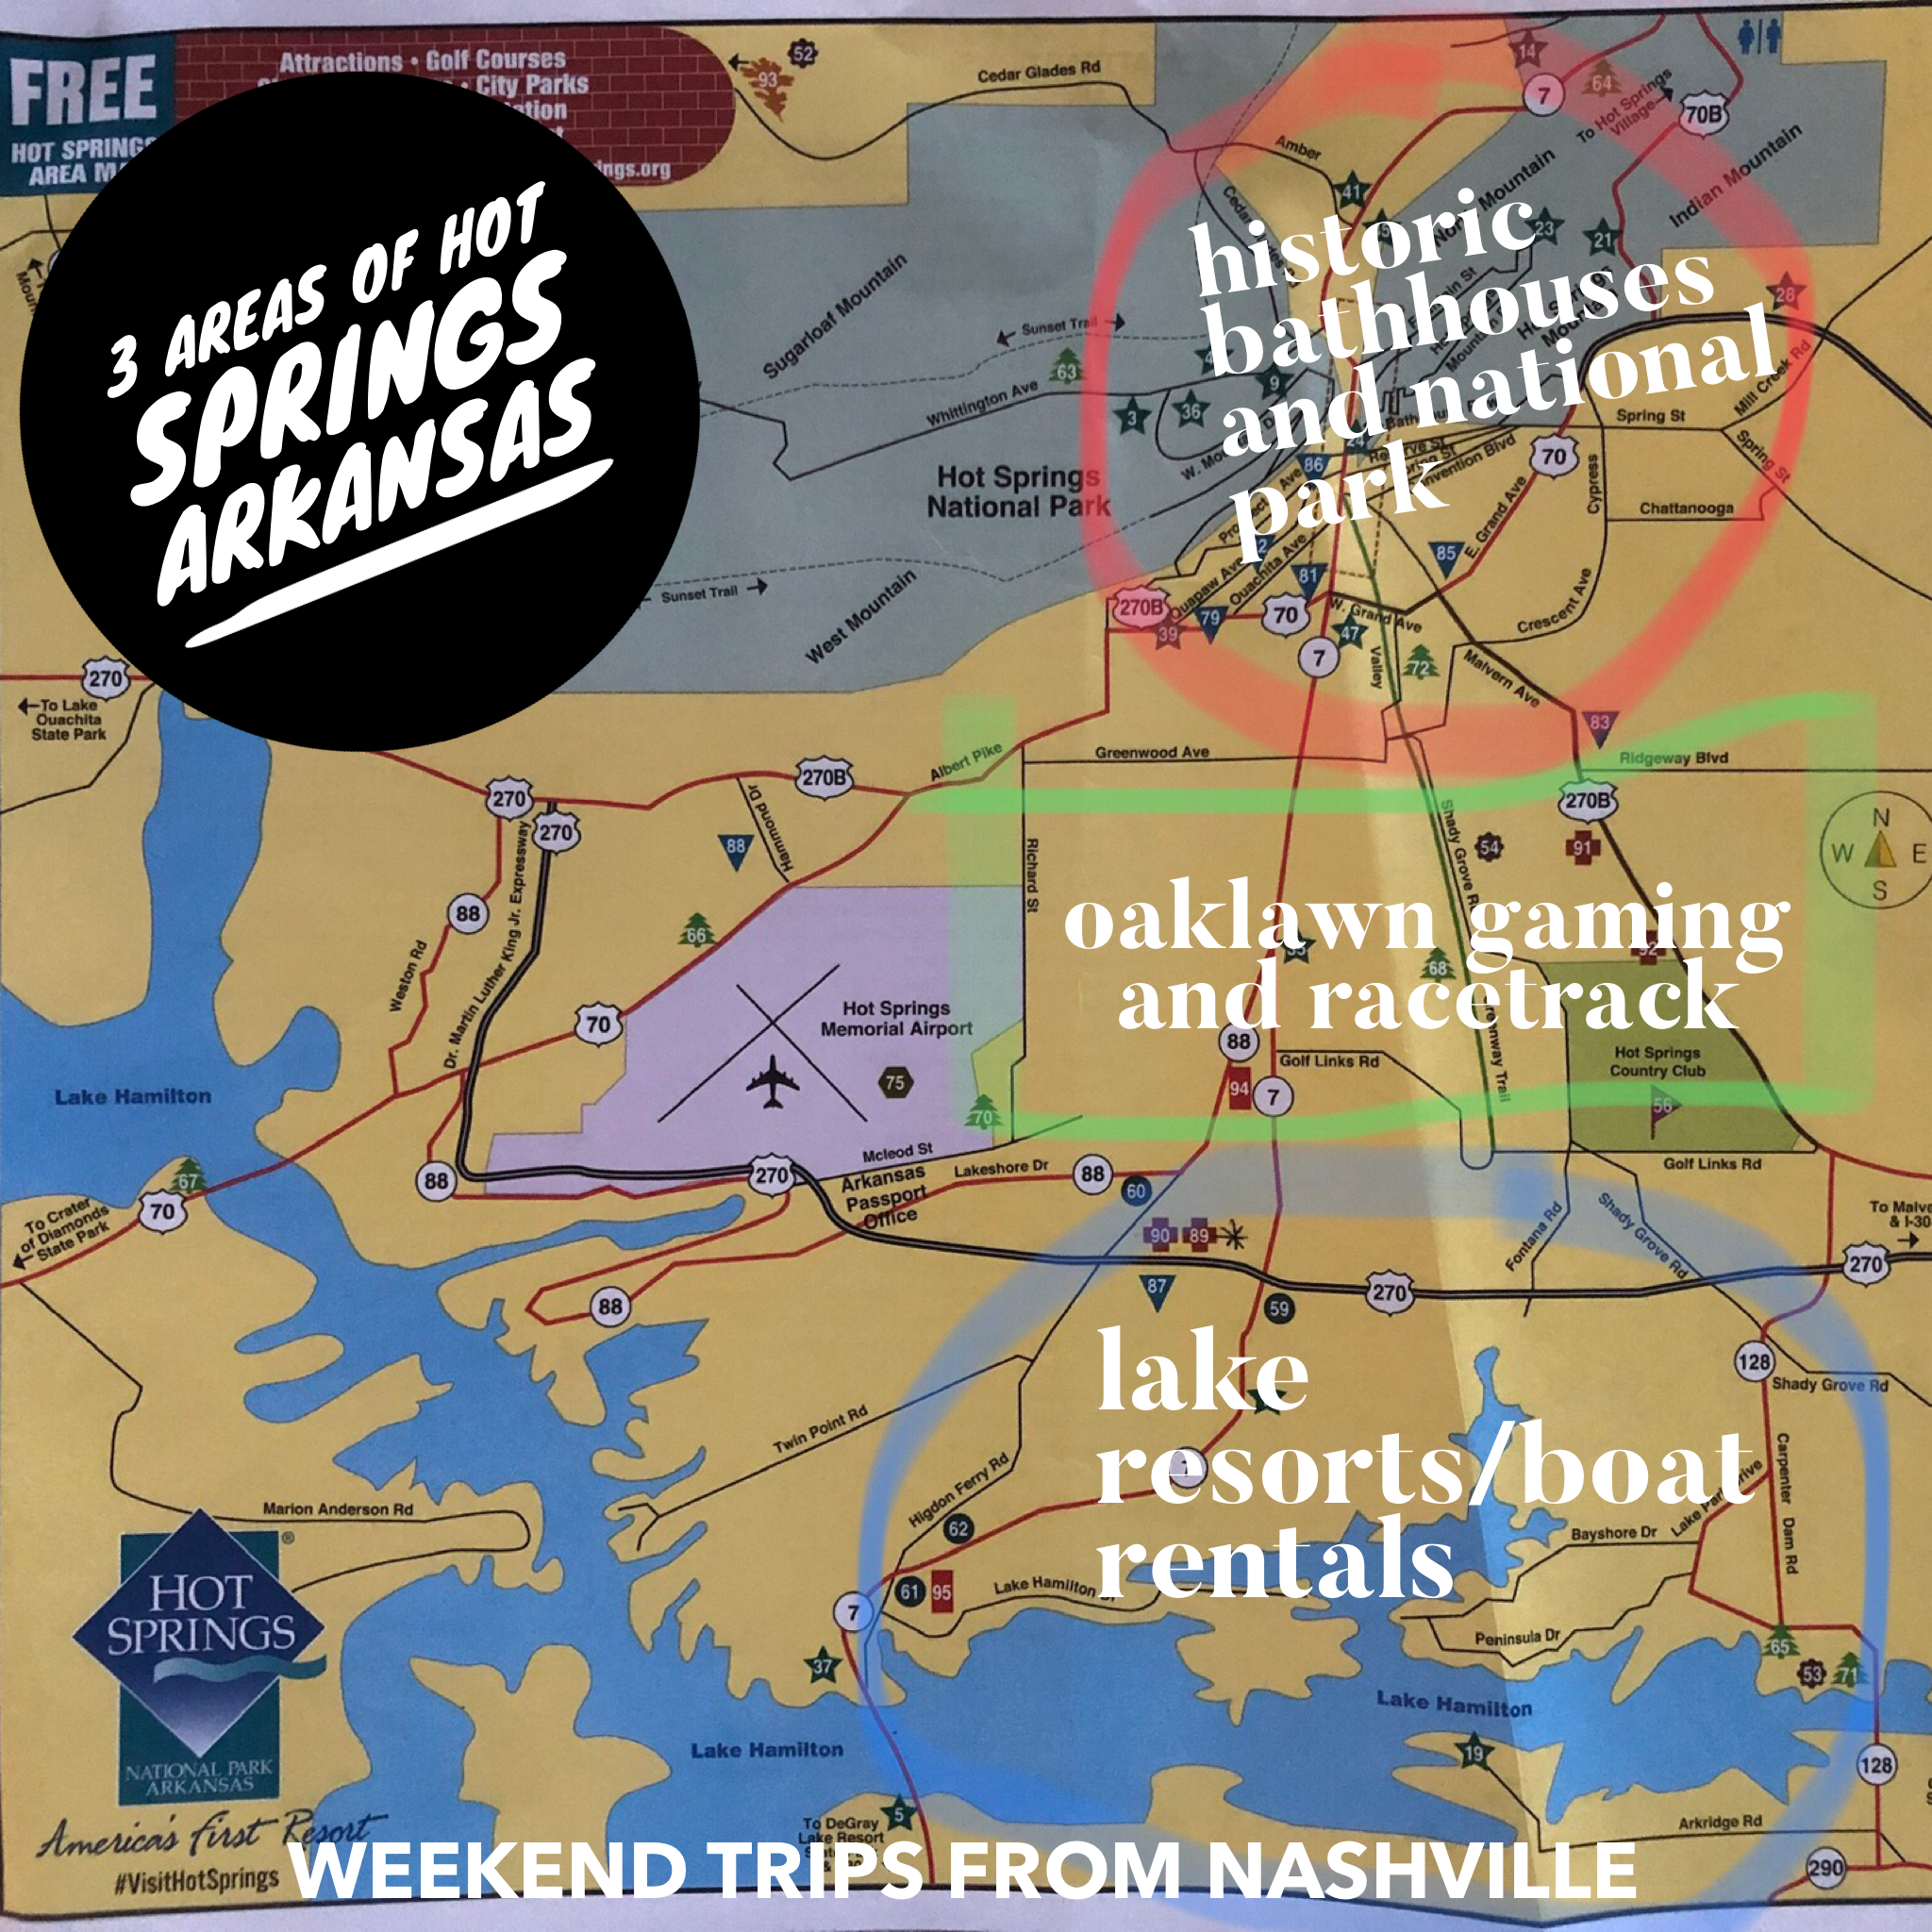 An overview of Hot Springs, Arkansas via Weekend Trips from Nashville